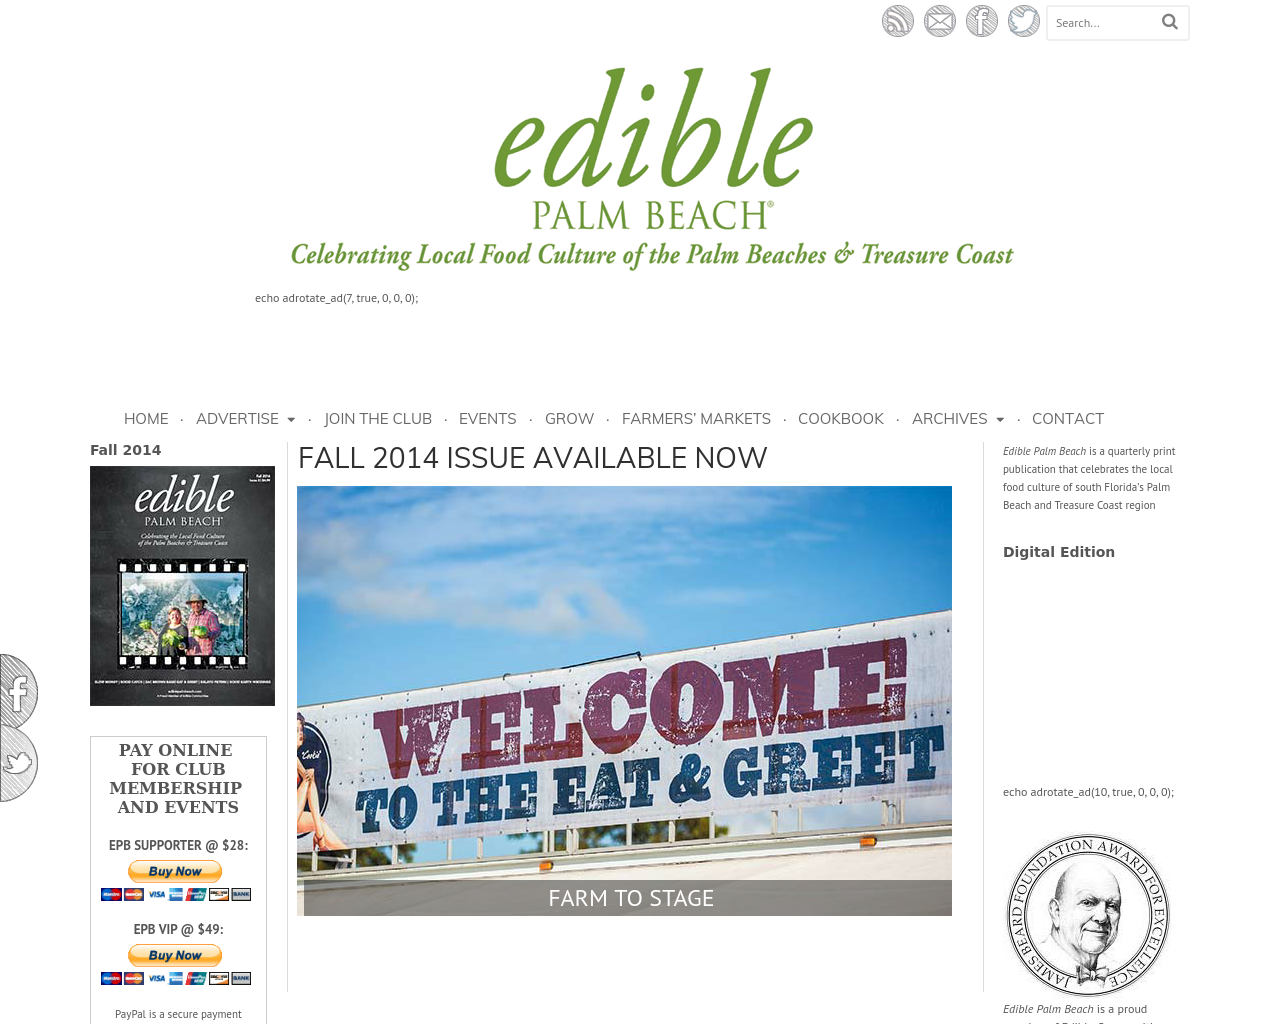 Edible-Palm-Beach-Advertising-Reviews-Pricing